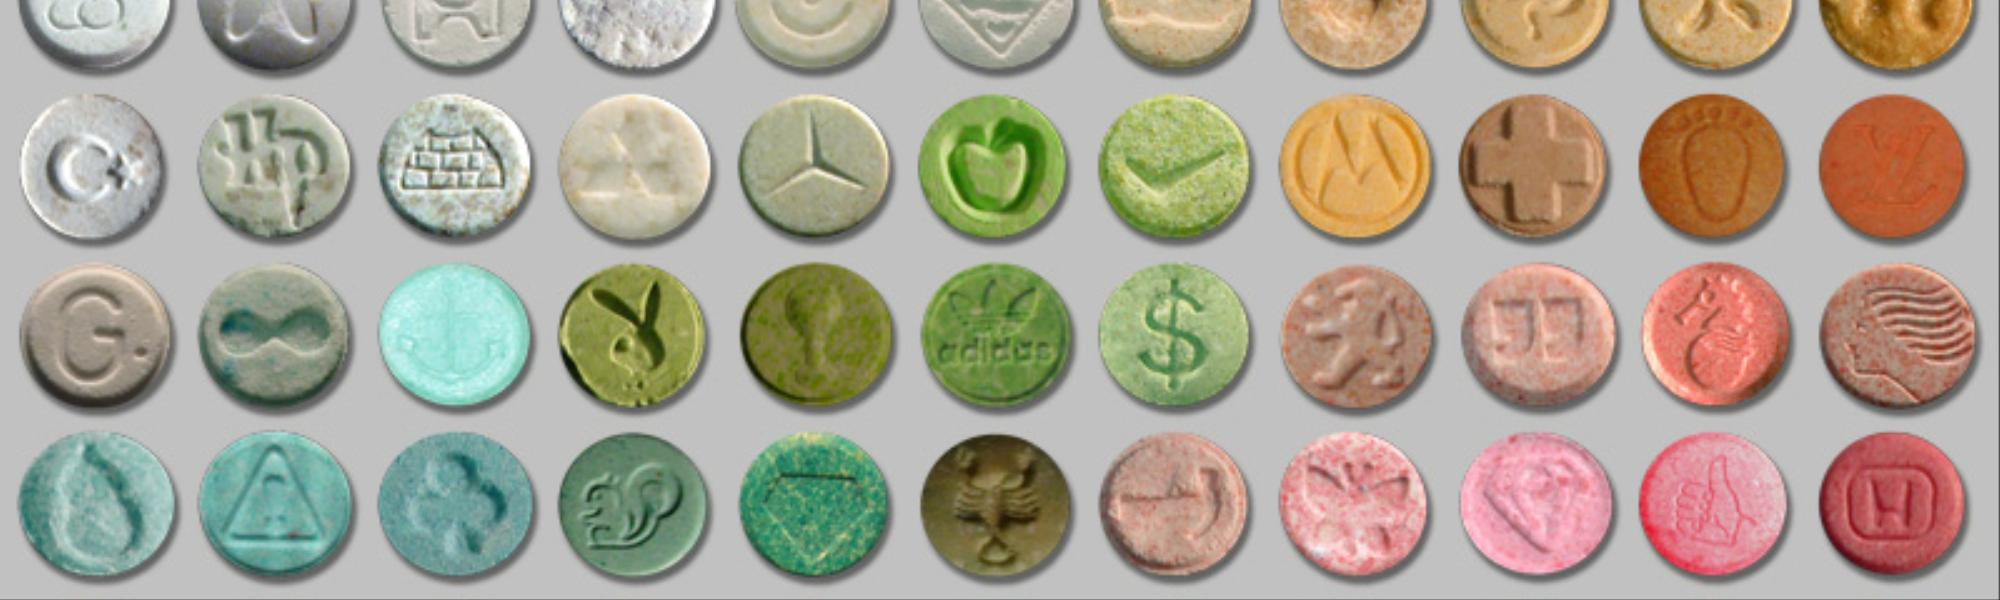 This Ecstasy Review Site Is a Hotbed of Perfect Pill ...